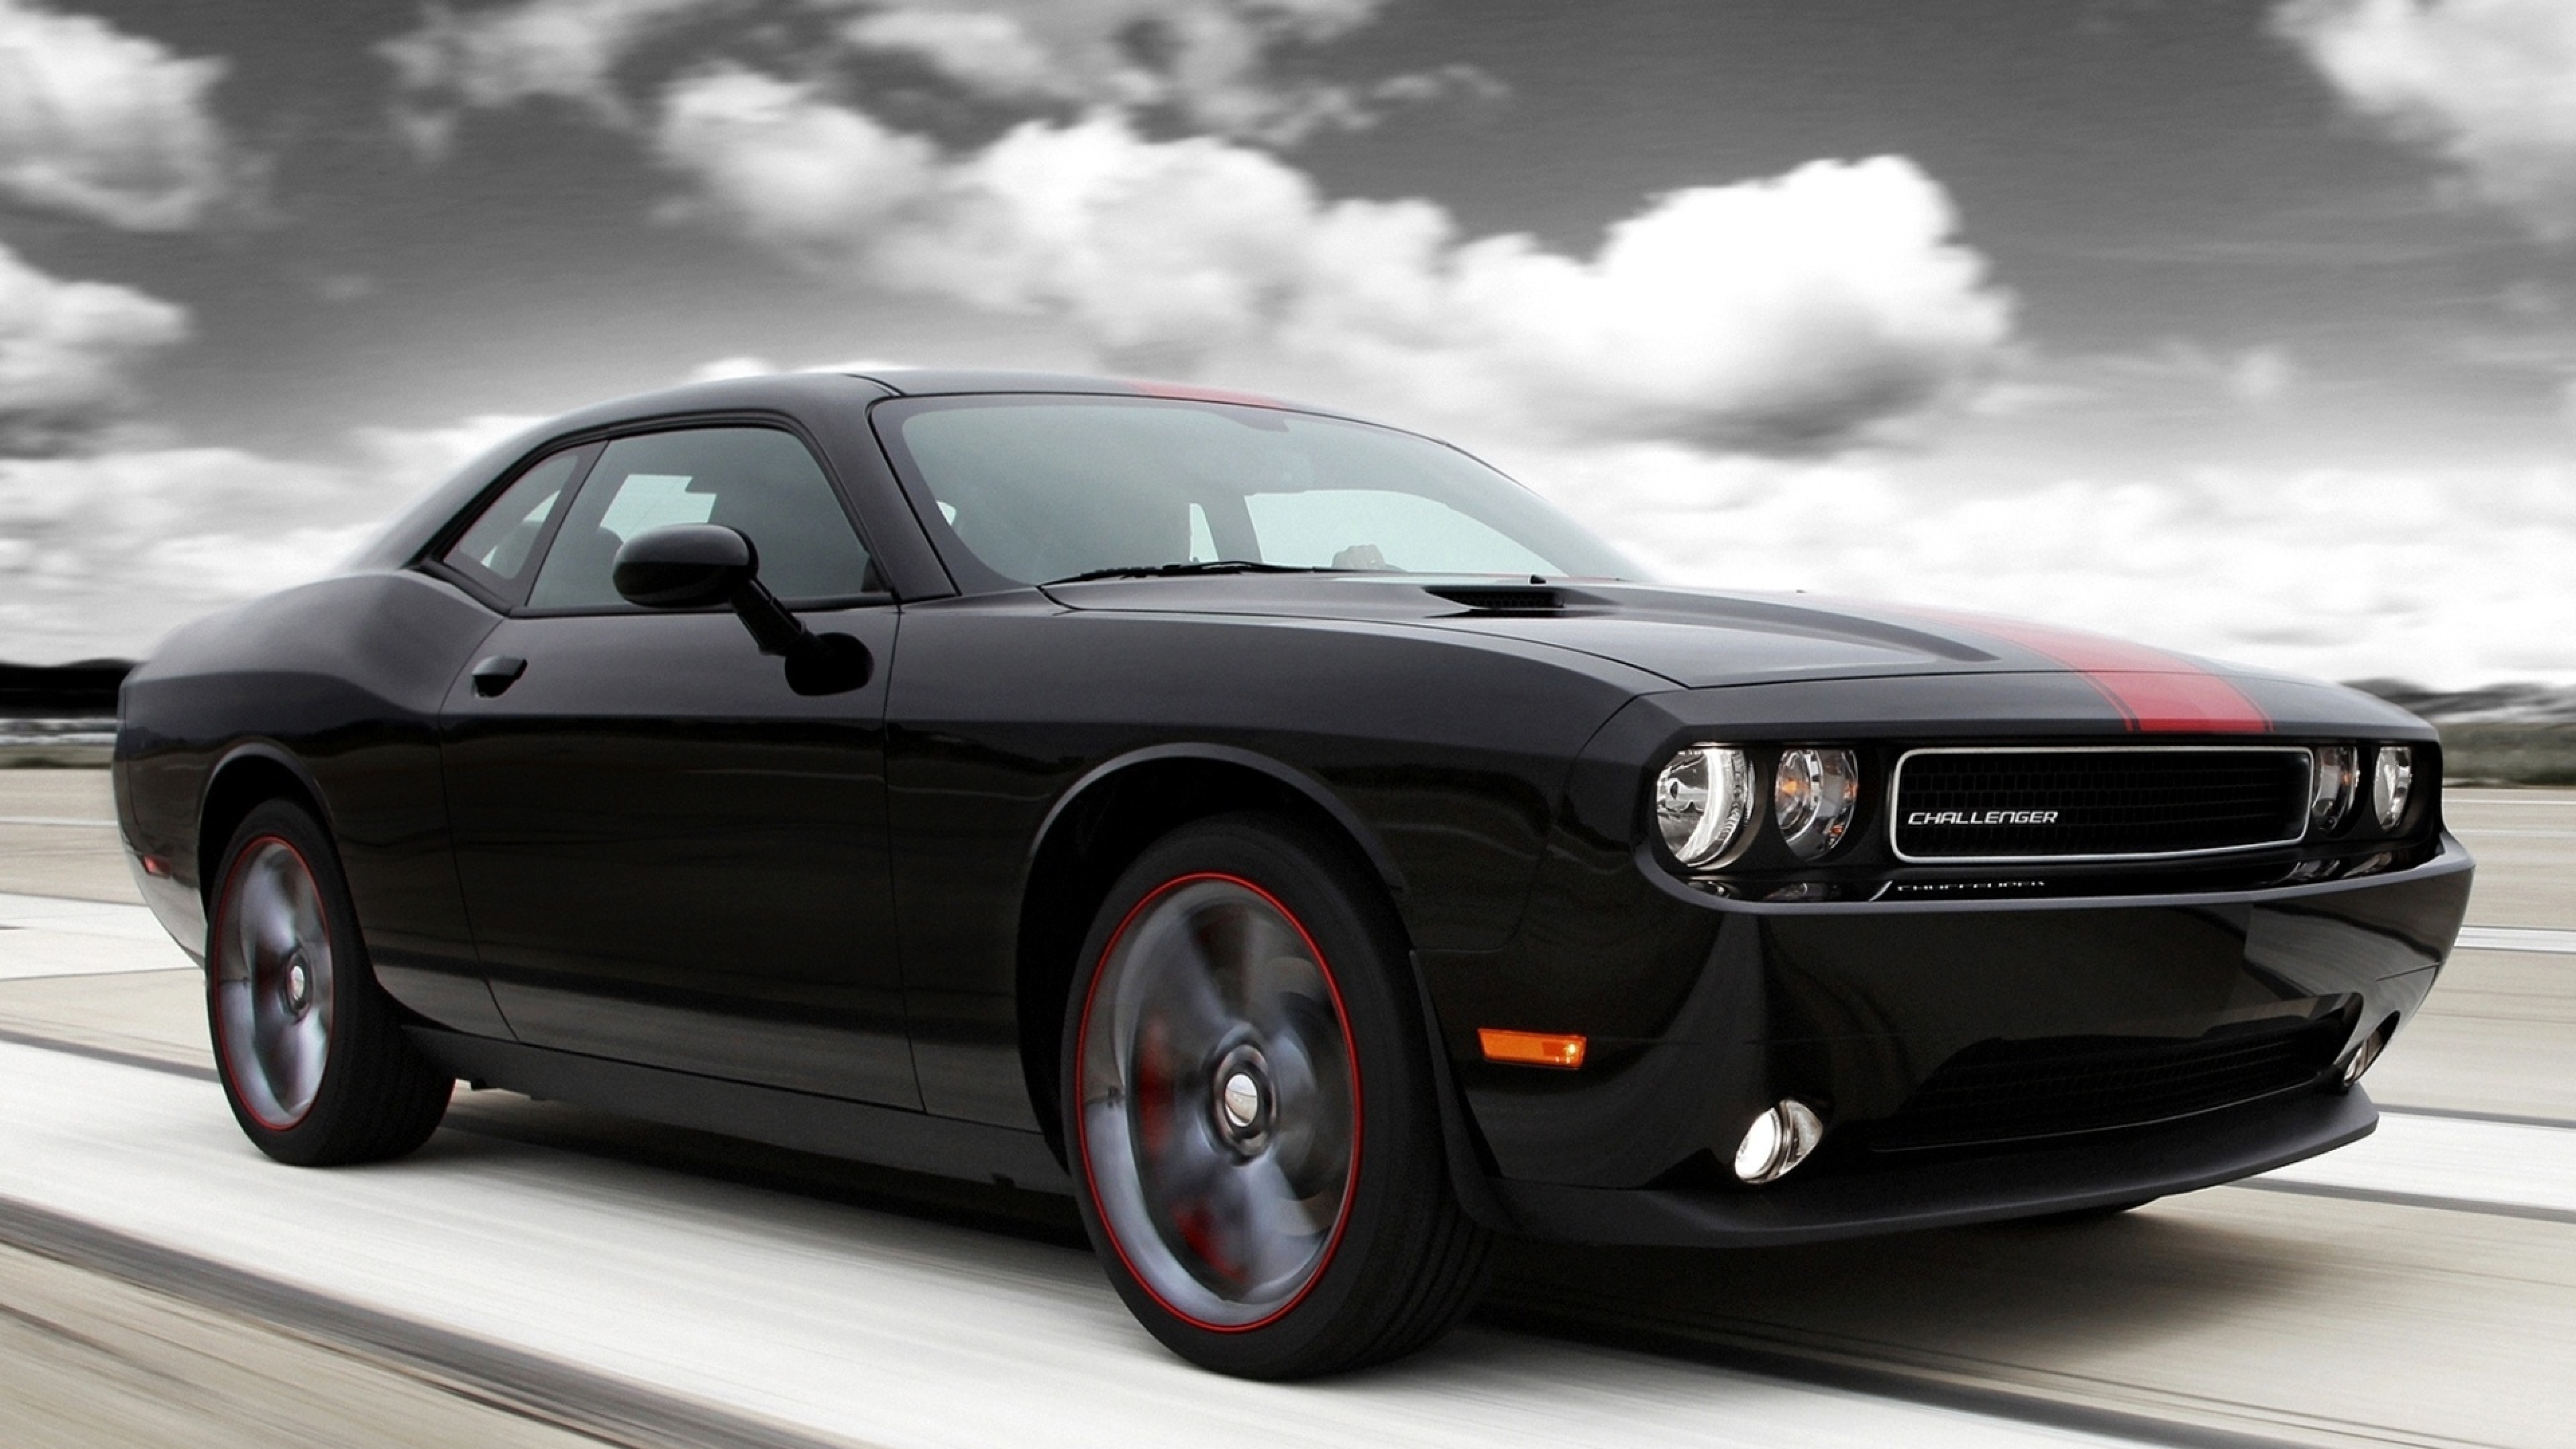 Cool Muscle Cars Wallpaper 809163 Walldevil